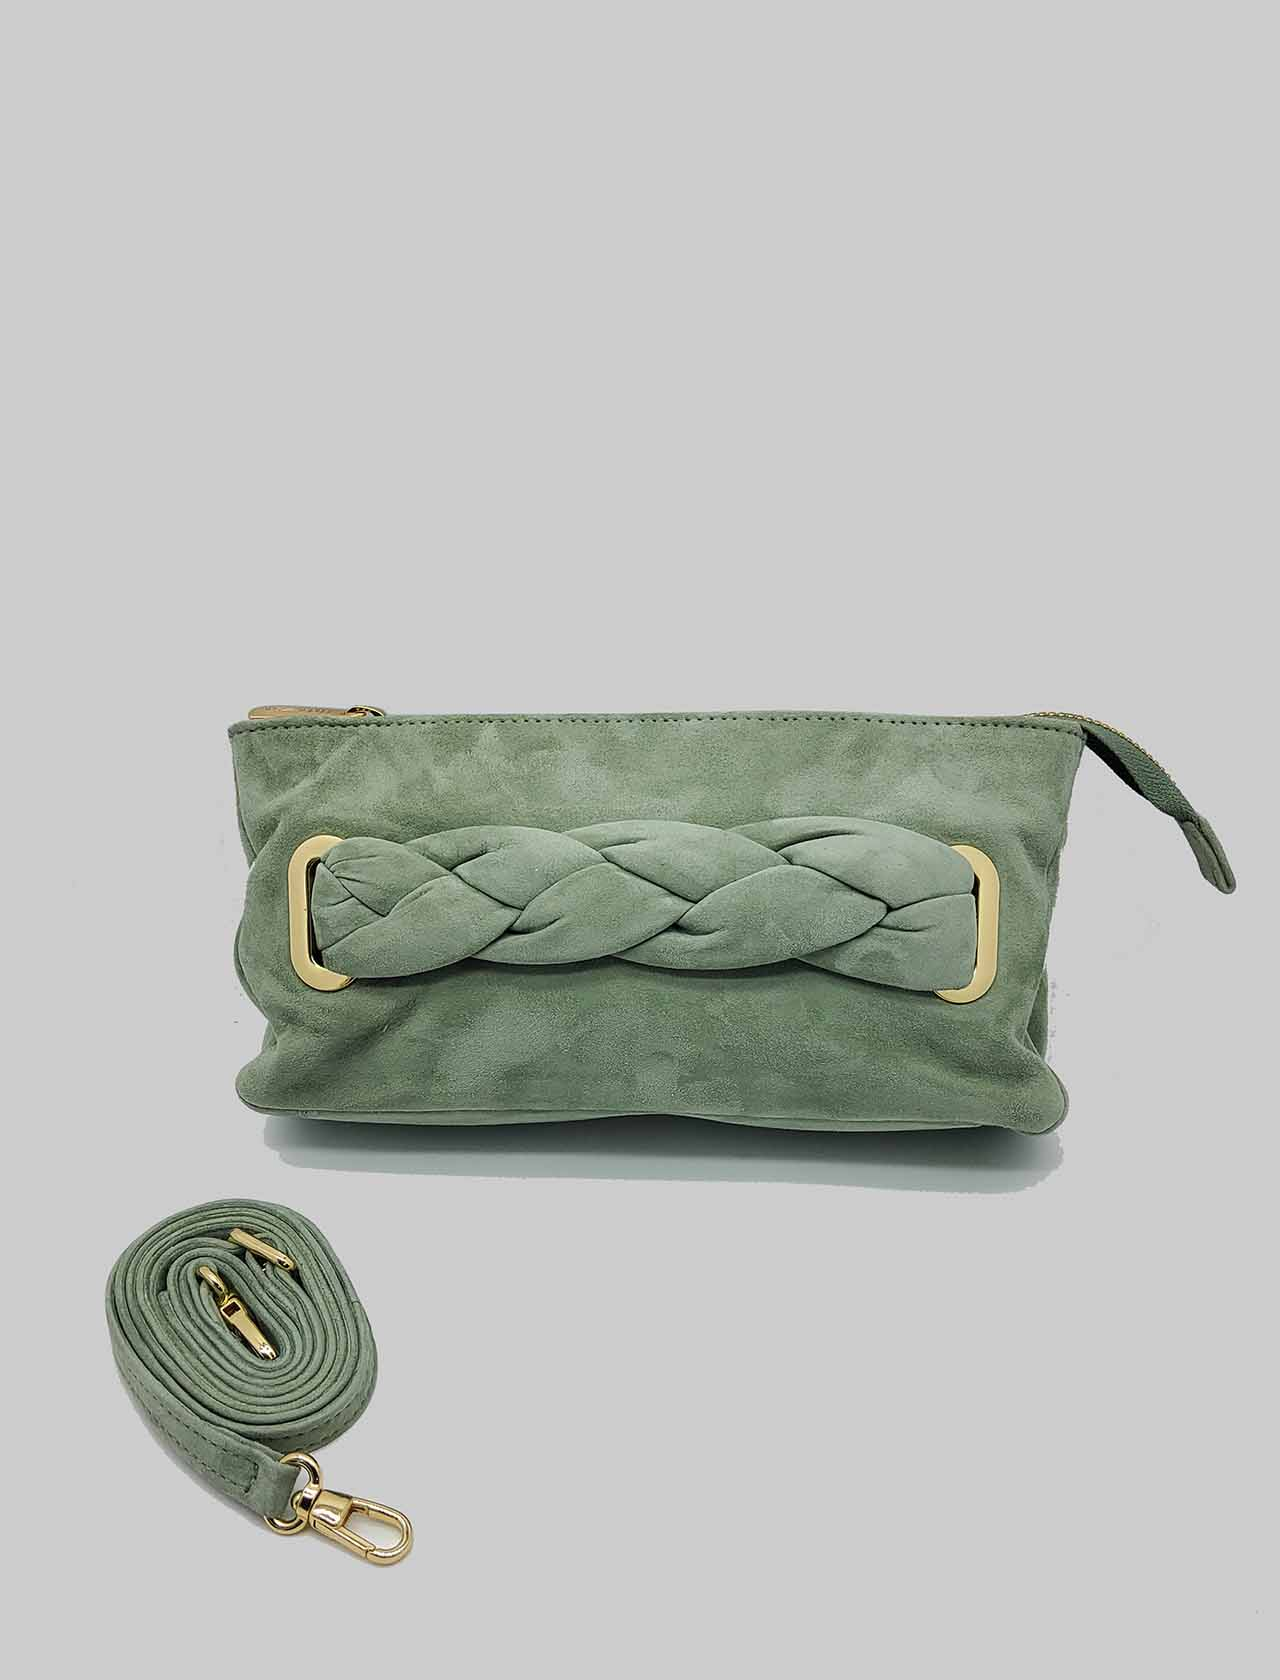 Woman Bag Clutch Bag in Green Suede with Braided Handle and Removable Shoulder Strap in Matching Color Unisa | Bags and backpacks | ZFORIS005